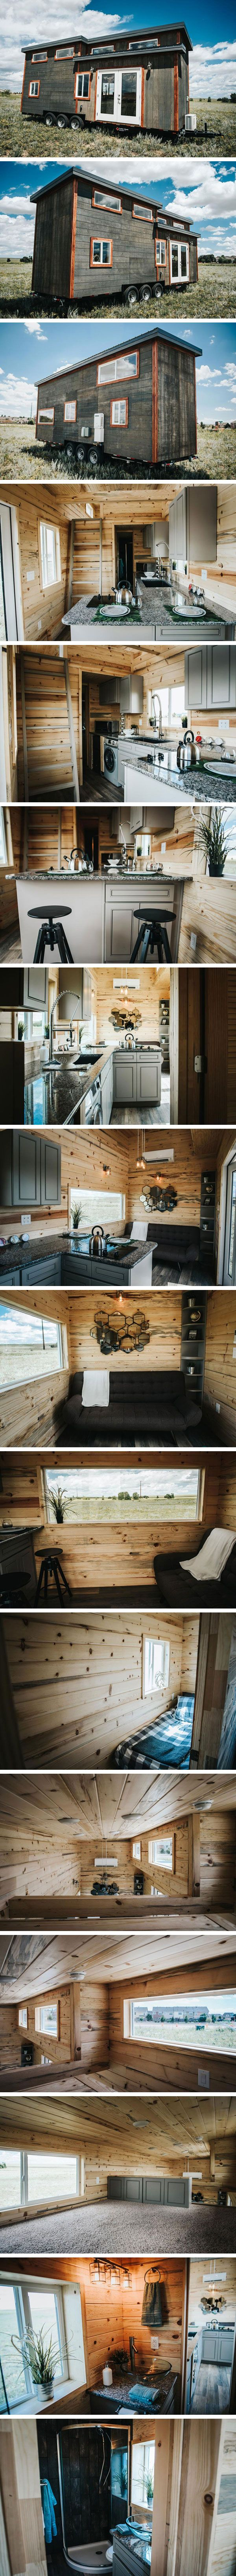 Дом на колесах Four Eagle от The Tiny Home Co. #tinyhomesdigest #tinyhouse #houseonwheels #camper